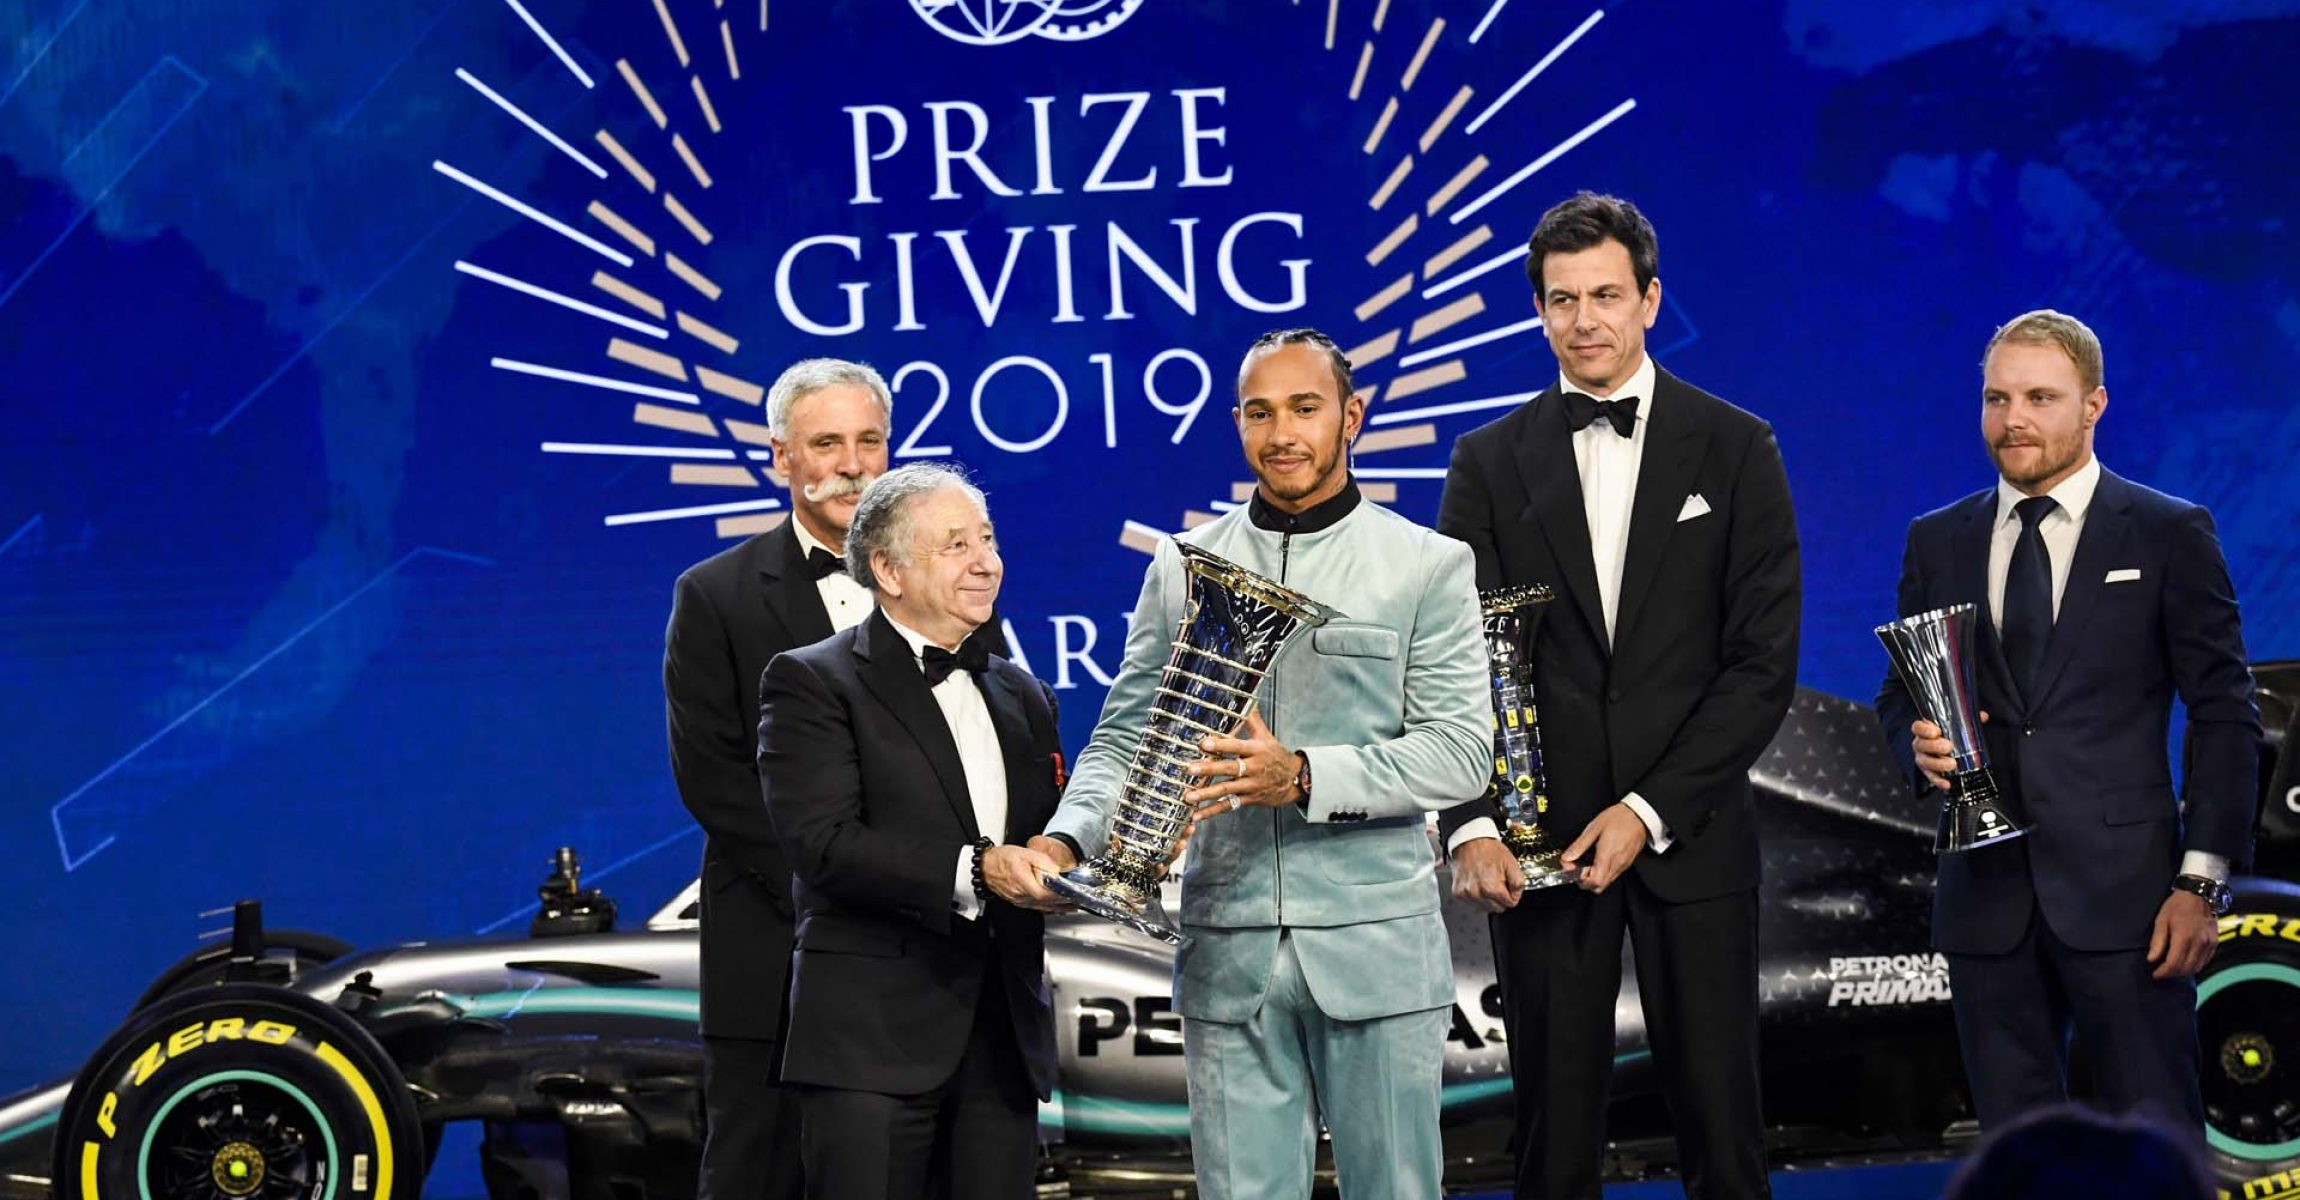 Lewis Hamilton with Toto Wolff, Valtteri Bottas, Chase Carey and Jean Todt, portrait during the FIA Prize Giving at Carrousel du Louvre, Paris december 8, 2019 - Photo Eric Vargiolu / DPPI